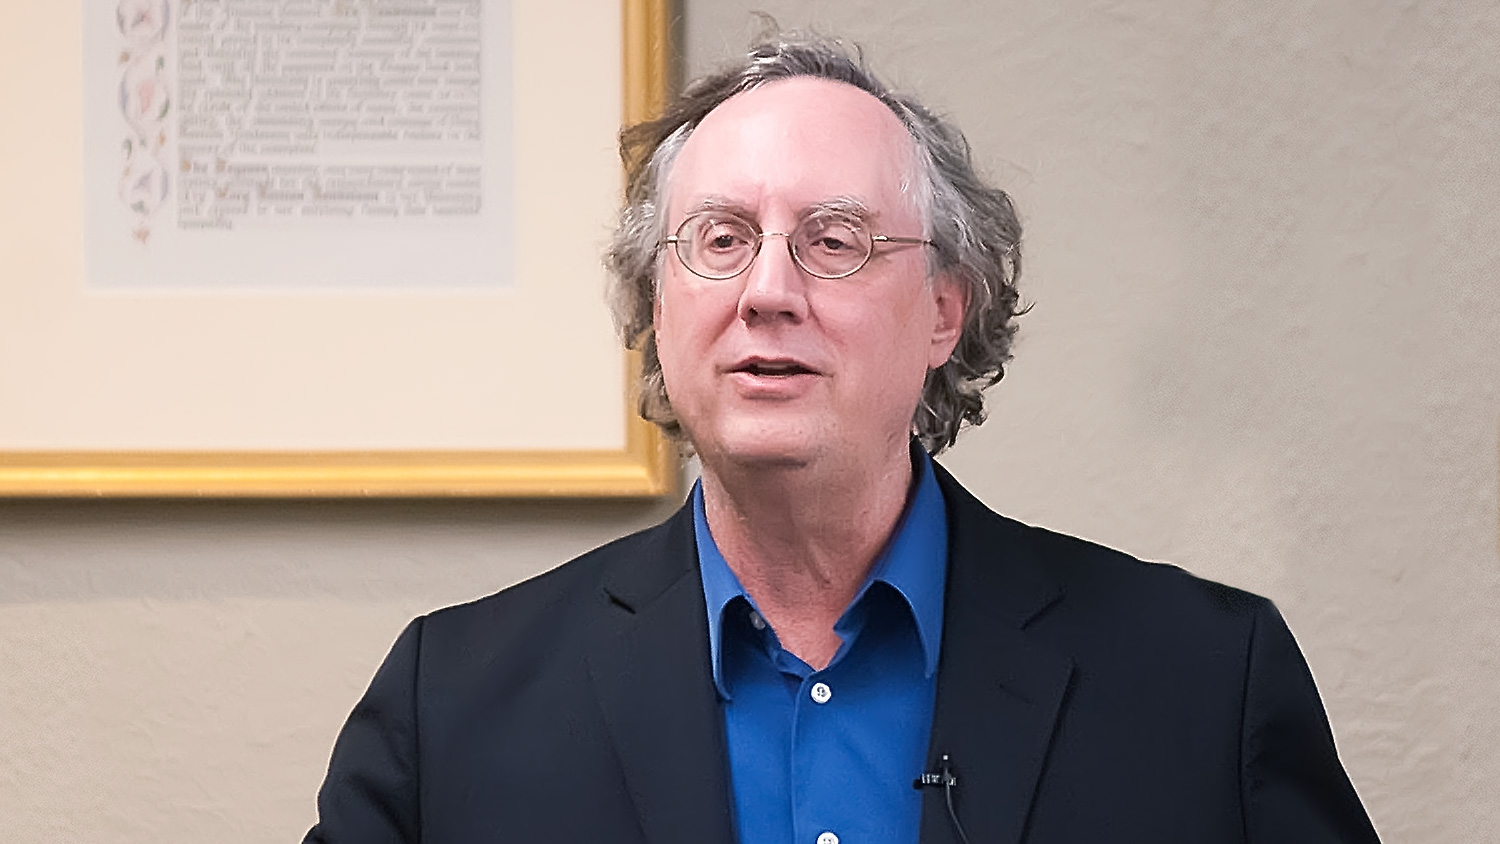 Juan Cole - Professor at the University of Michigan, Commentator